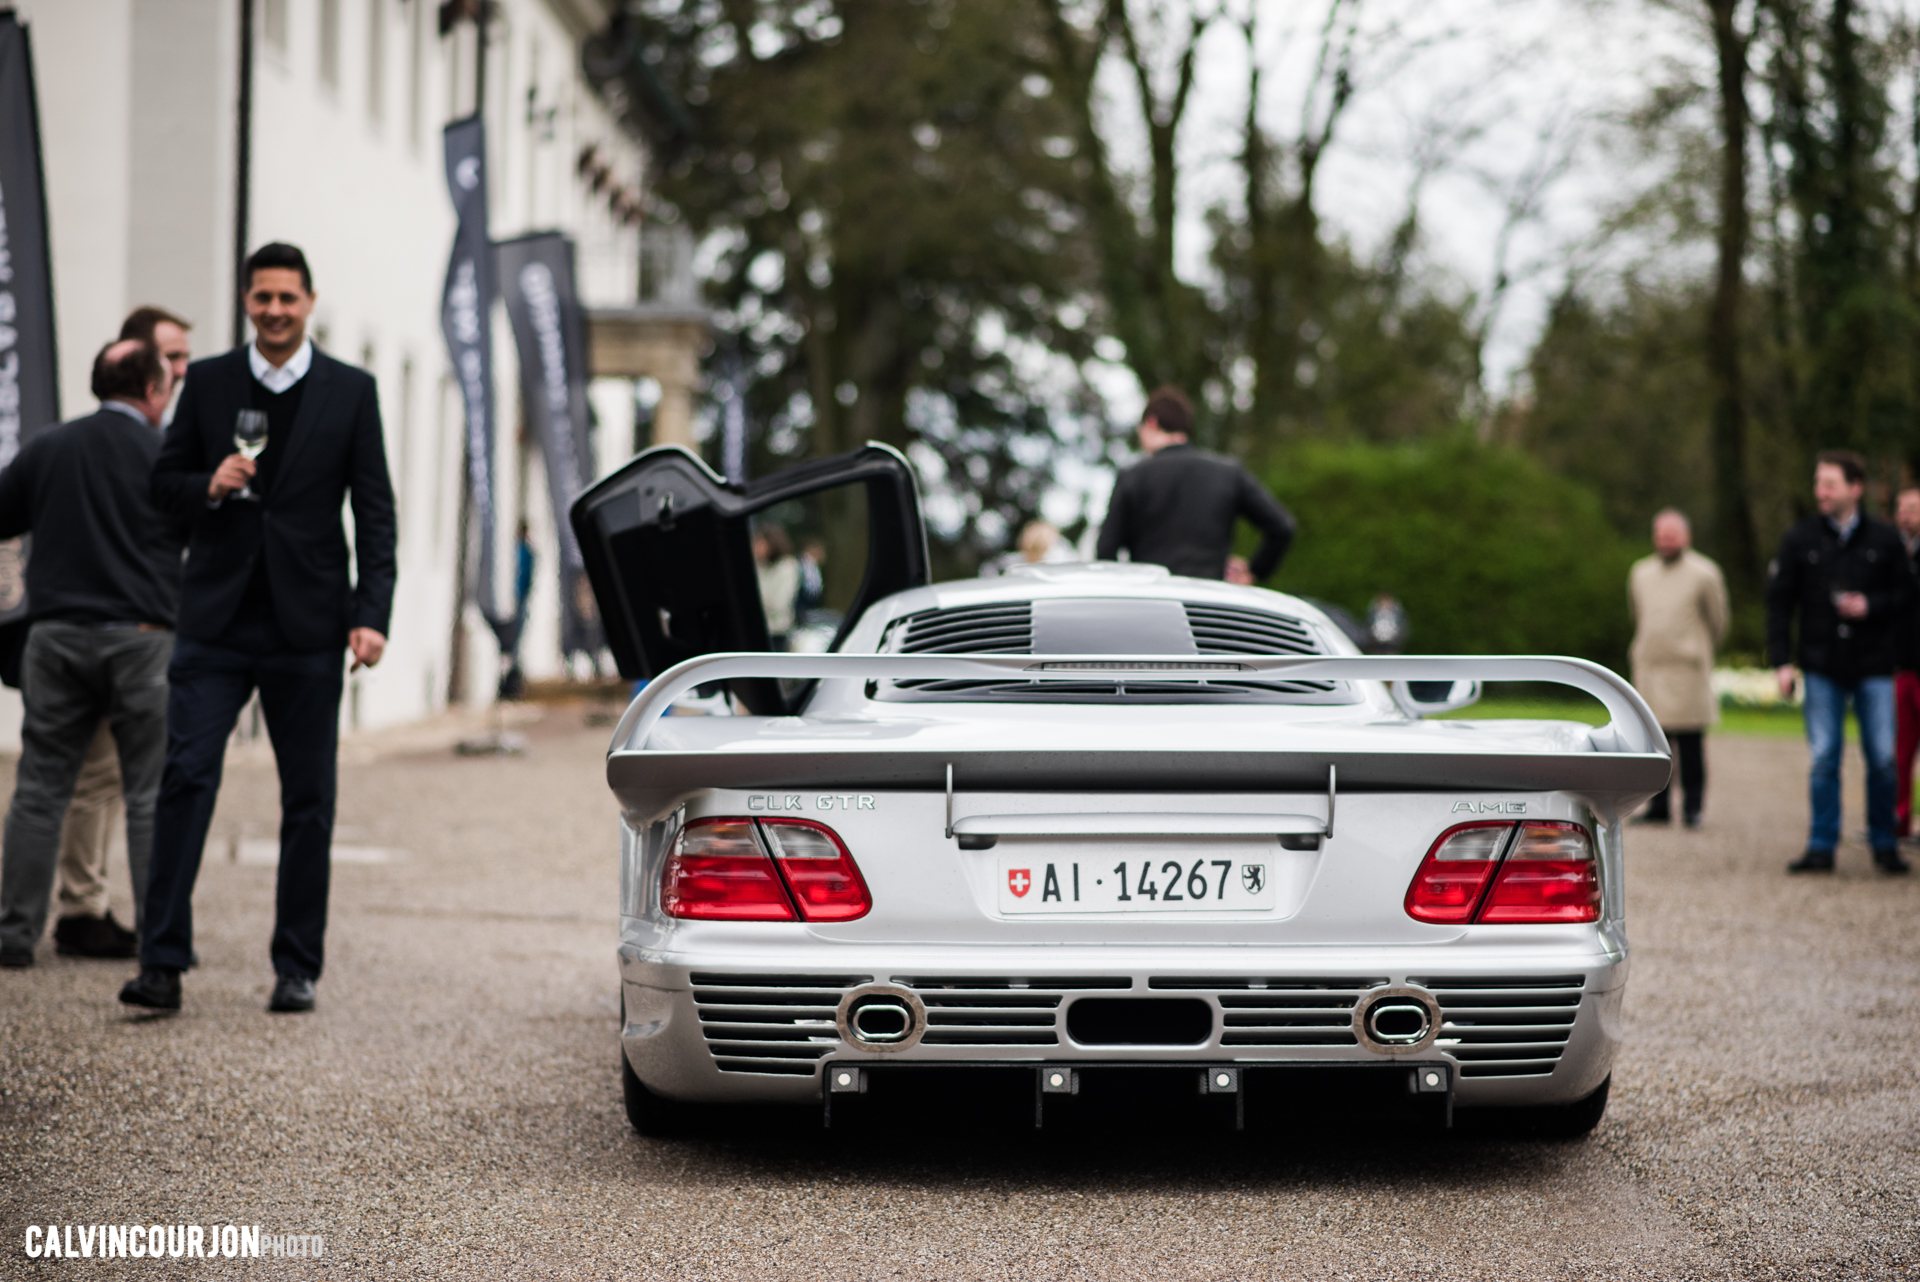 Mercedes Benz CLK GTR rear - 2016 - Calvin Courjon Photographie